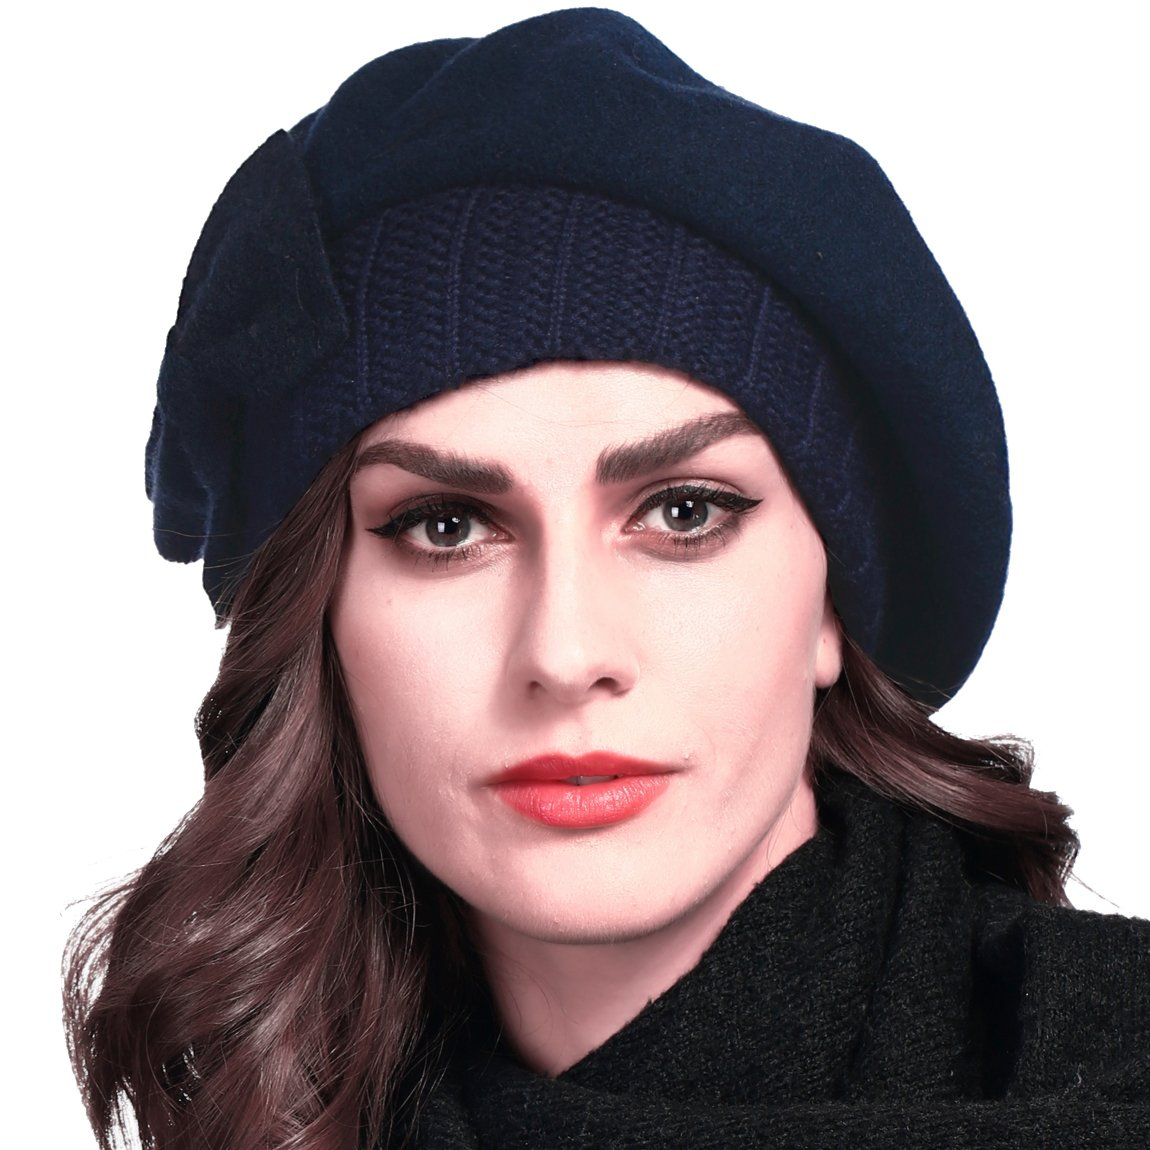 1f7e791fa13 FORBUSITE Cute Womens 100% Wool Beret Knit Cap with Bow in 10 Colors  product image